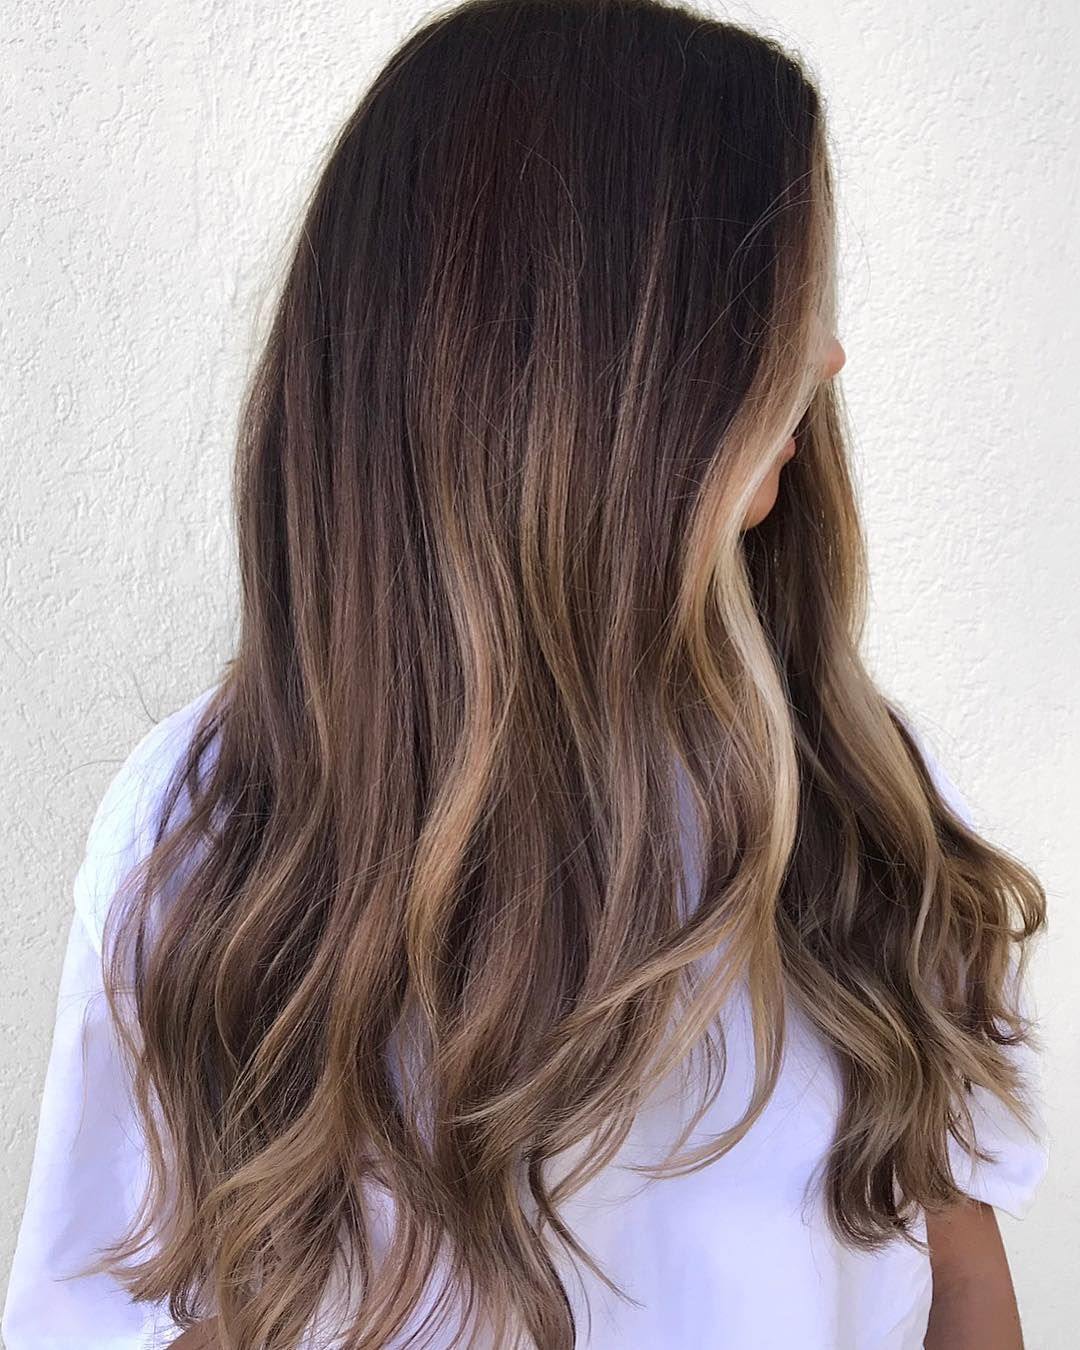 70 Flattering Balayage Hair Color Ideas For 2020 Brown Hair With Highlights Hair Highlights Brown Ombre Hair